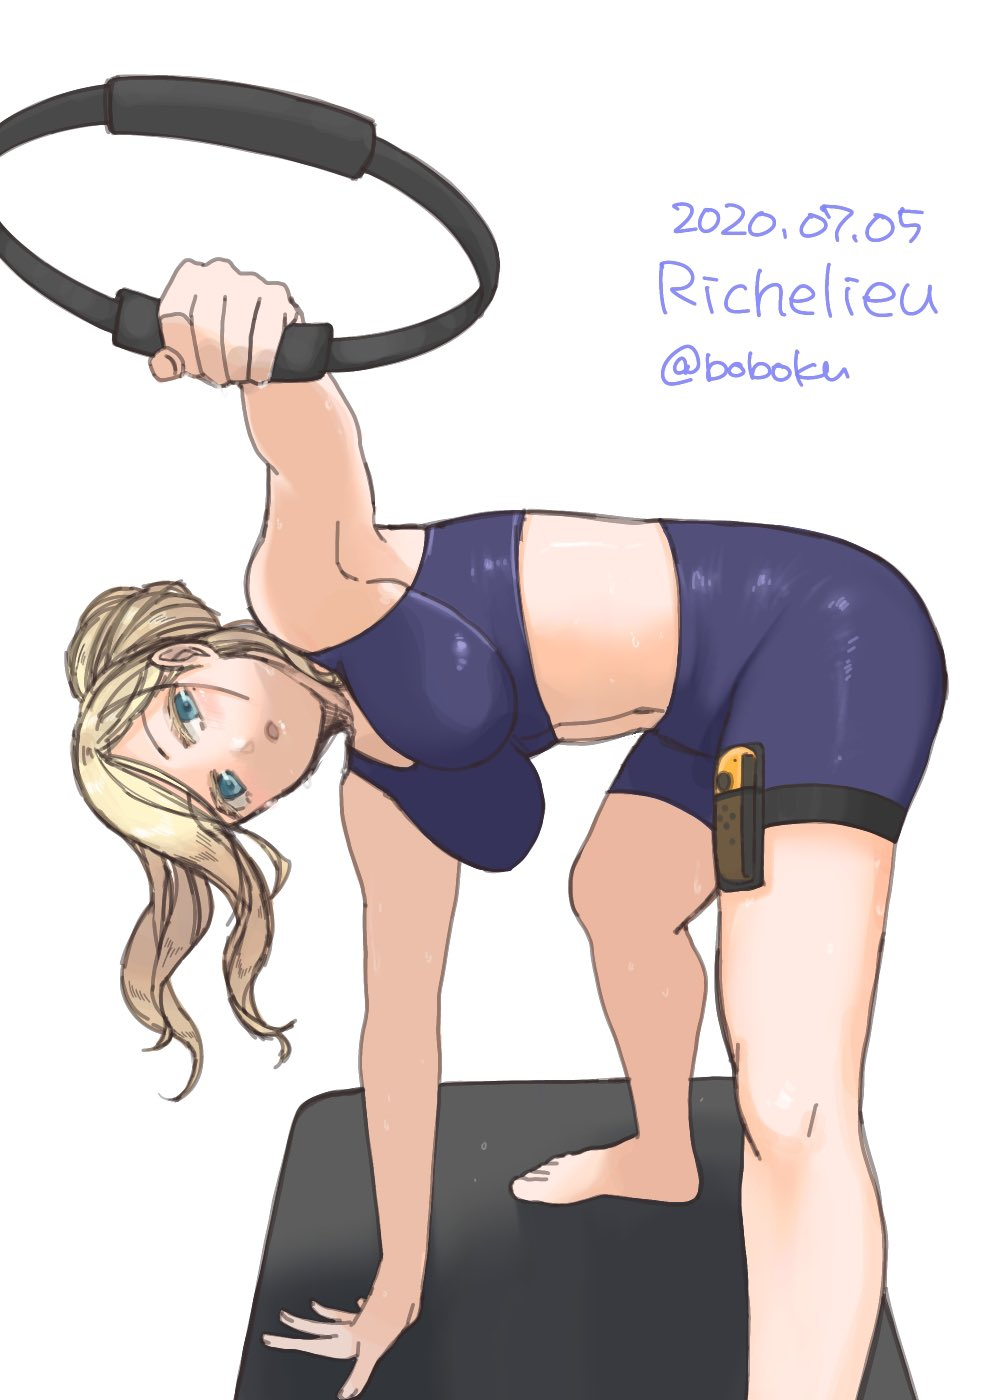 1girl alternate_costume alternate_hairstyle bike_shorts blonde_hair blue_eyes bobokuboboku character_name dated exercise hair_between_eyes highres kantai_collection long_hair looking_at_viewer mole mole_under_eye mole_under_mouth ponytail richelieu_(kantai_collection) ring-con ring_fit_adventure simple_background solo sports_bra twitter_username white_background yoga_mat